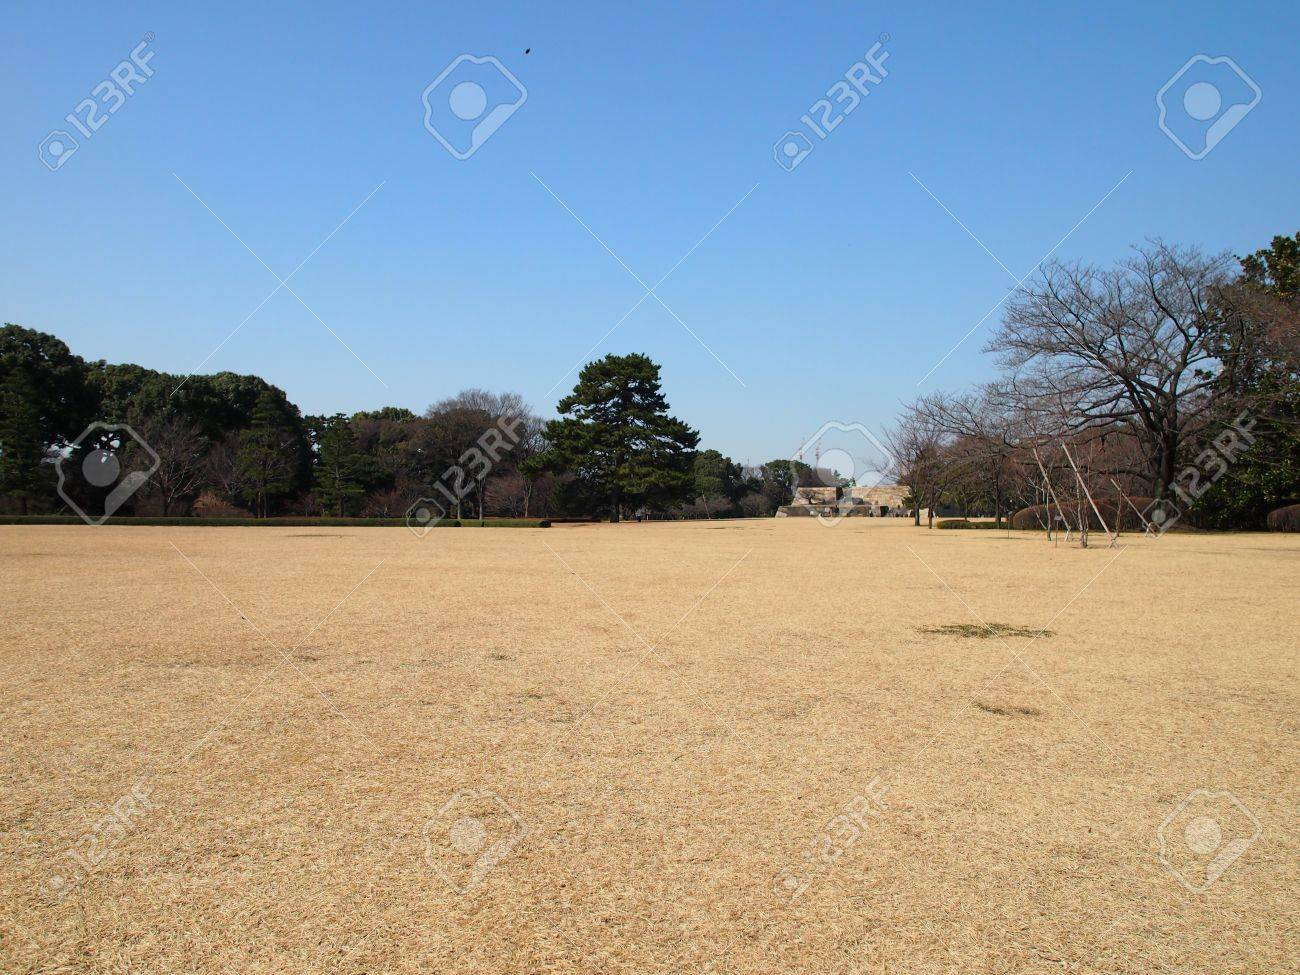 Giant Pine Tree at the end of the pasture Stock Photo - 18366227